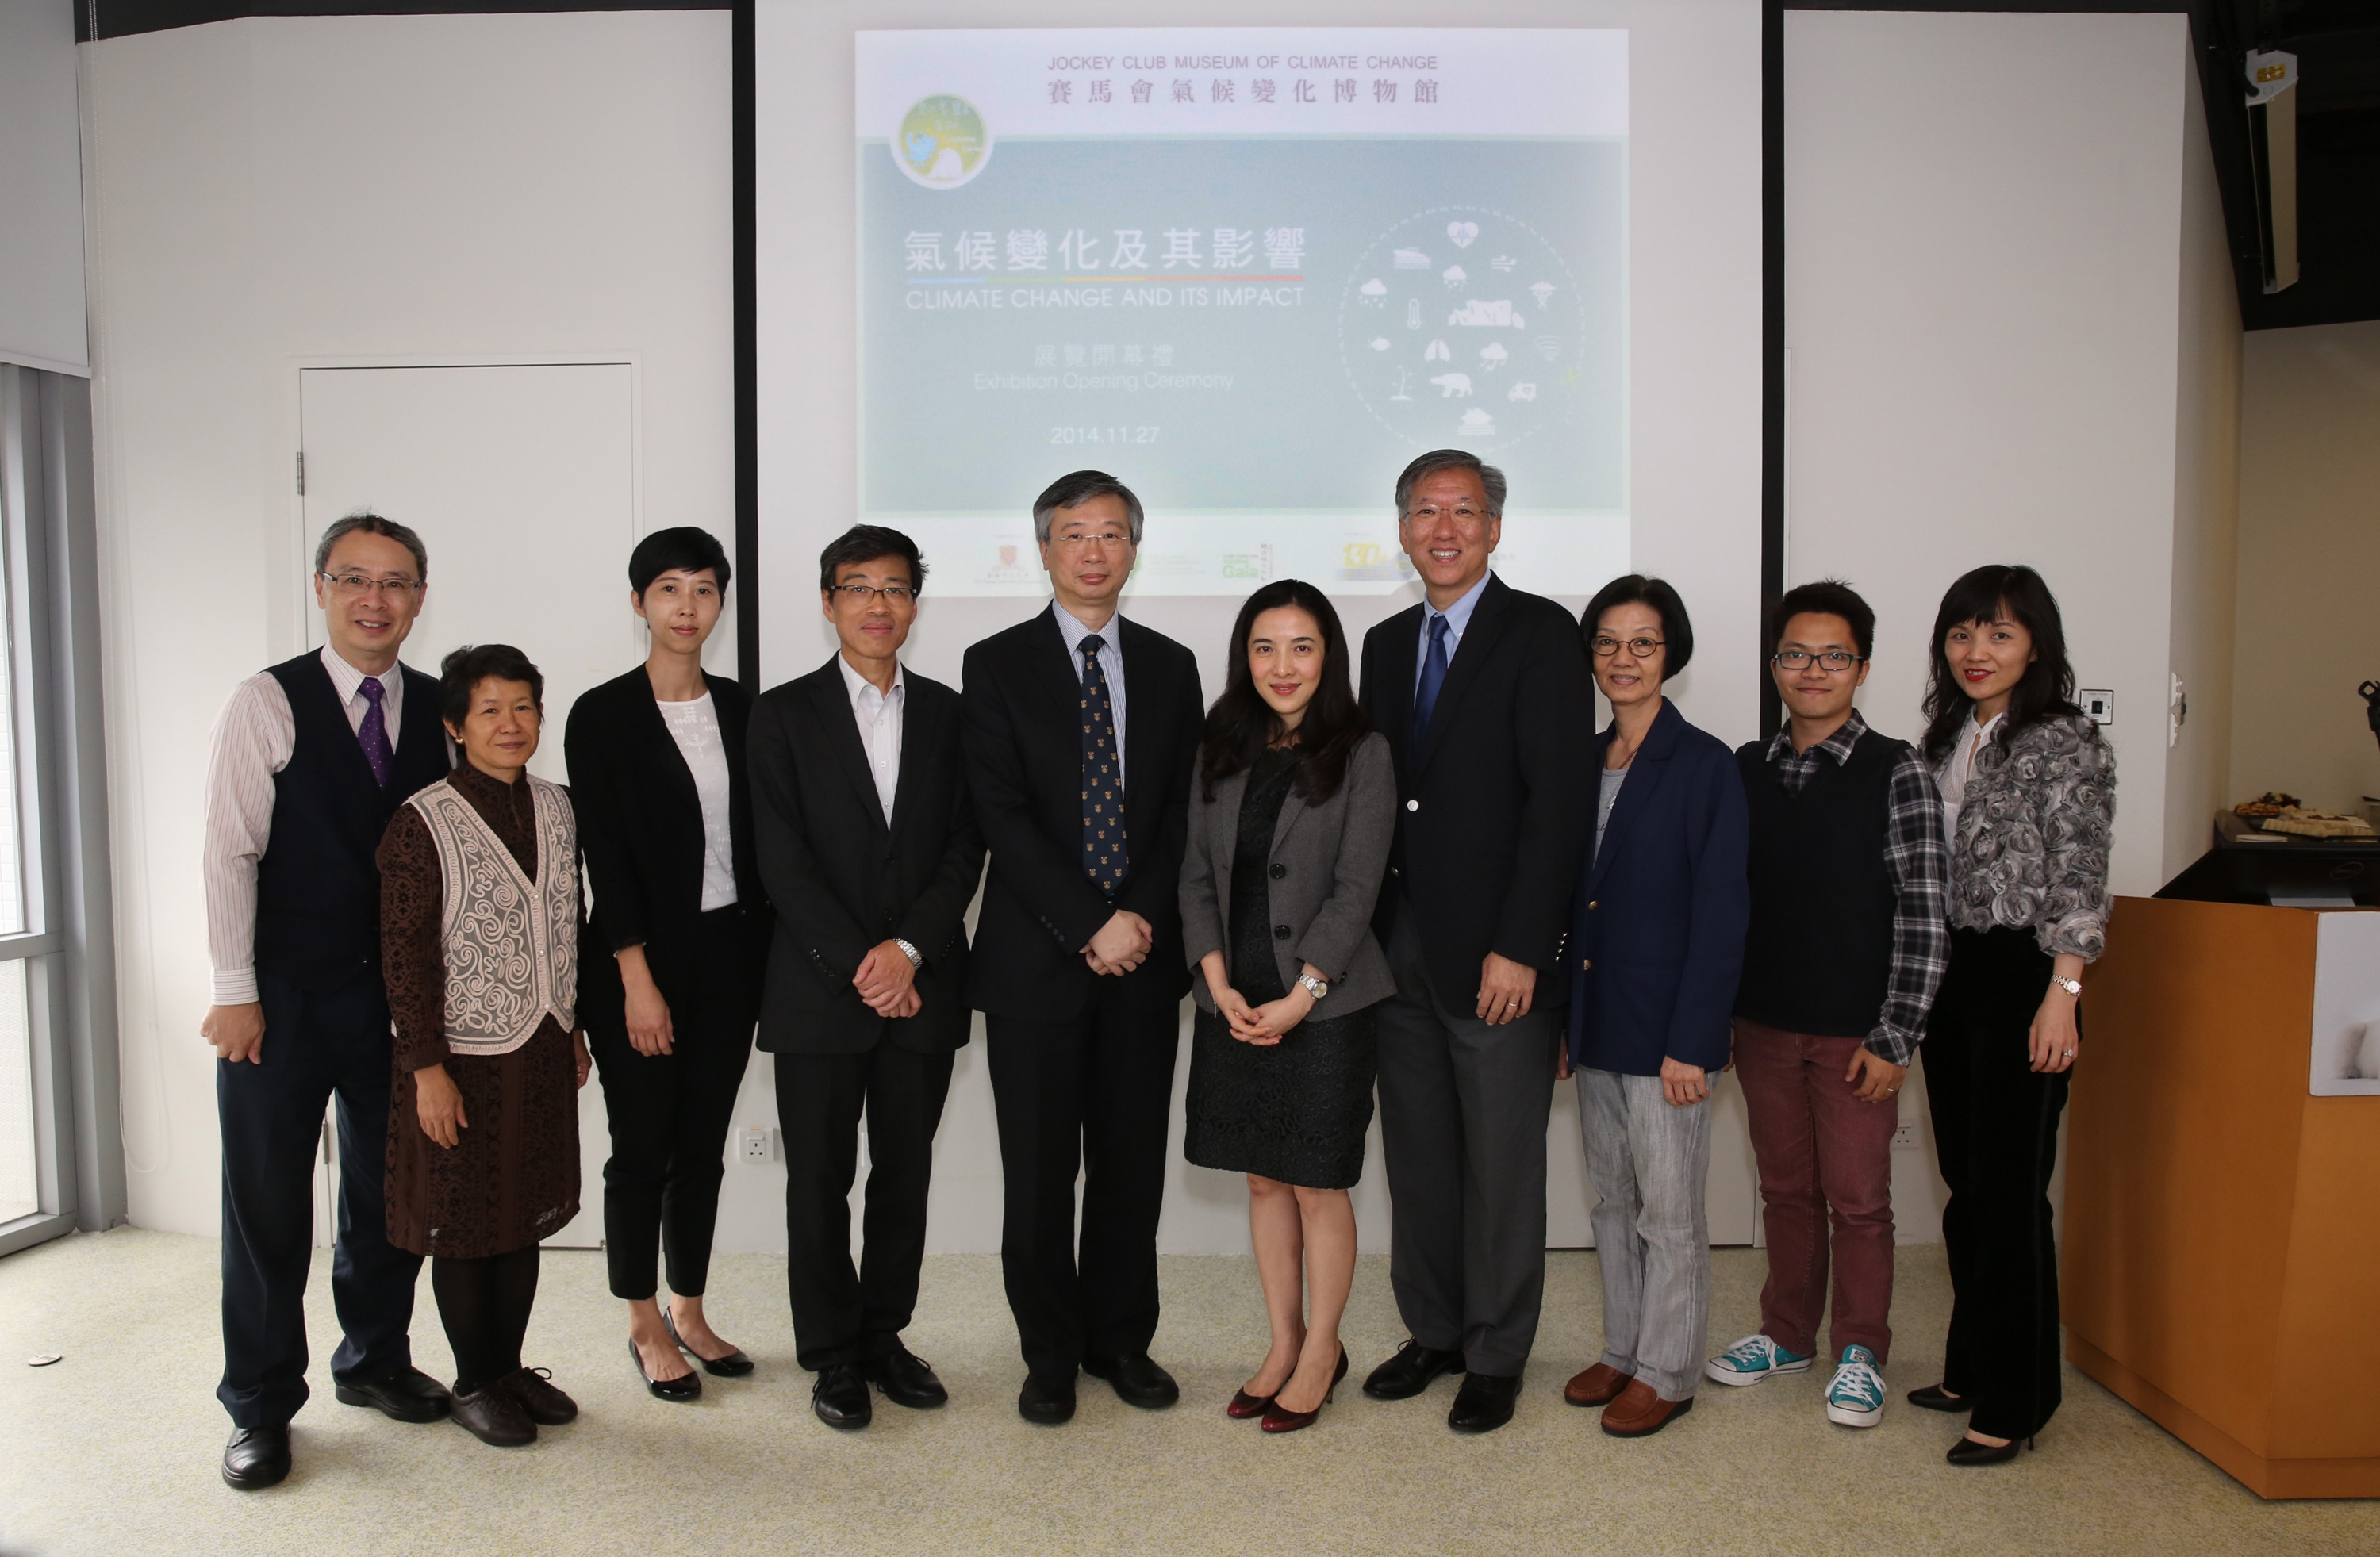 (From left) Prof Lee-man Chu, Associate Professor of the School of Life Sciences, CUHK; Ms Shuet-fan Leung, TWGHs Yow Kam Yuen College; Ms Pat Wong, Fanling Environmental Resource Centre of the Environmental Protection Department; Mr Pak-shing Tai, Principal of TWGHs Yow Kam Yuen College, Prof Tung Fung, Associate Vice-President of CUHK; Ms Shirley Fisher, Charities Manager of The Hong Kong Jockey Club; Prof Nelson Chen, Director of the School of Architecture, CUHK; Ms May Chung, Polar Museum Foundation; Prof Amos Pui Kuen Tai, Assistant Professor of Faculty of Science, CUHK; and Mrs Cecilia Lam, Programme Director of CUHK Jockey Club Initiative Gaia.